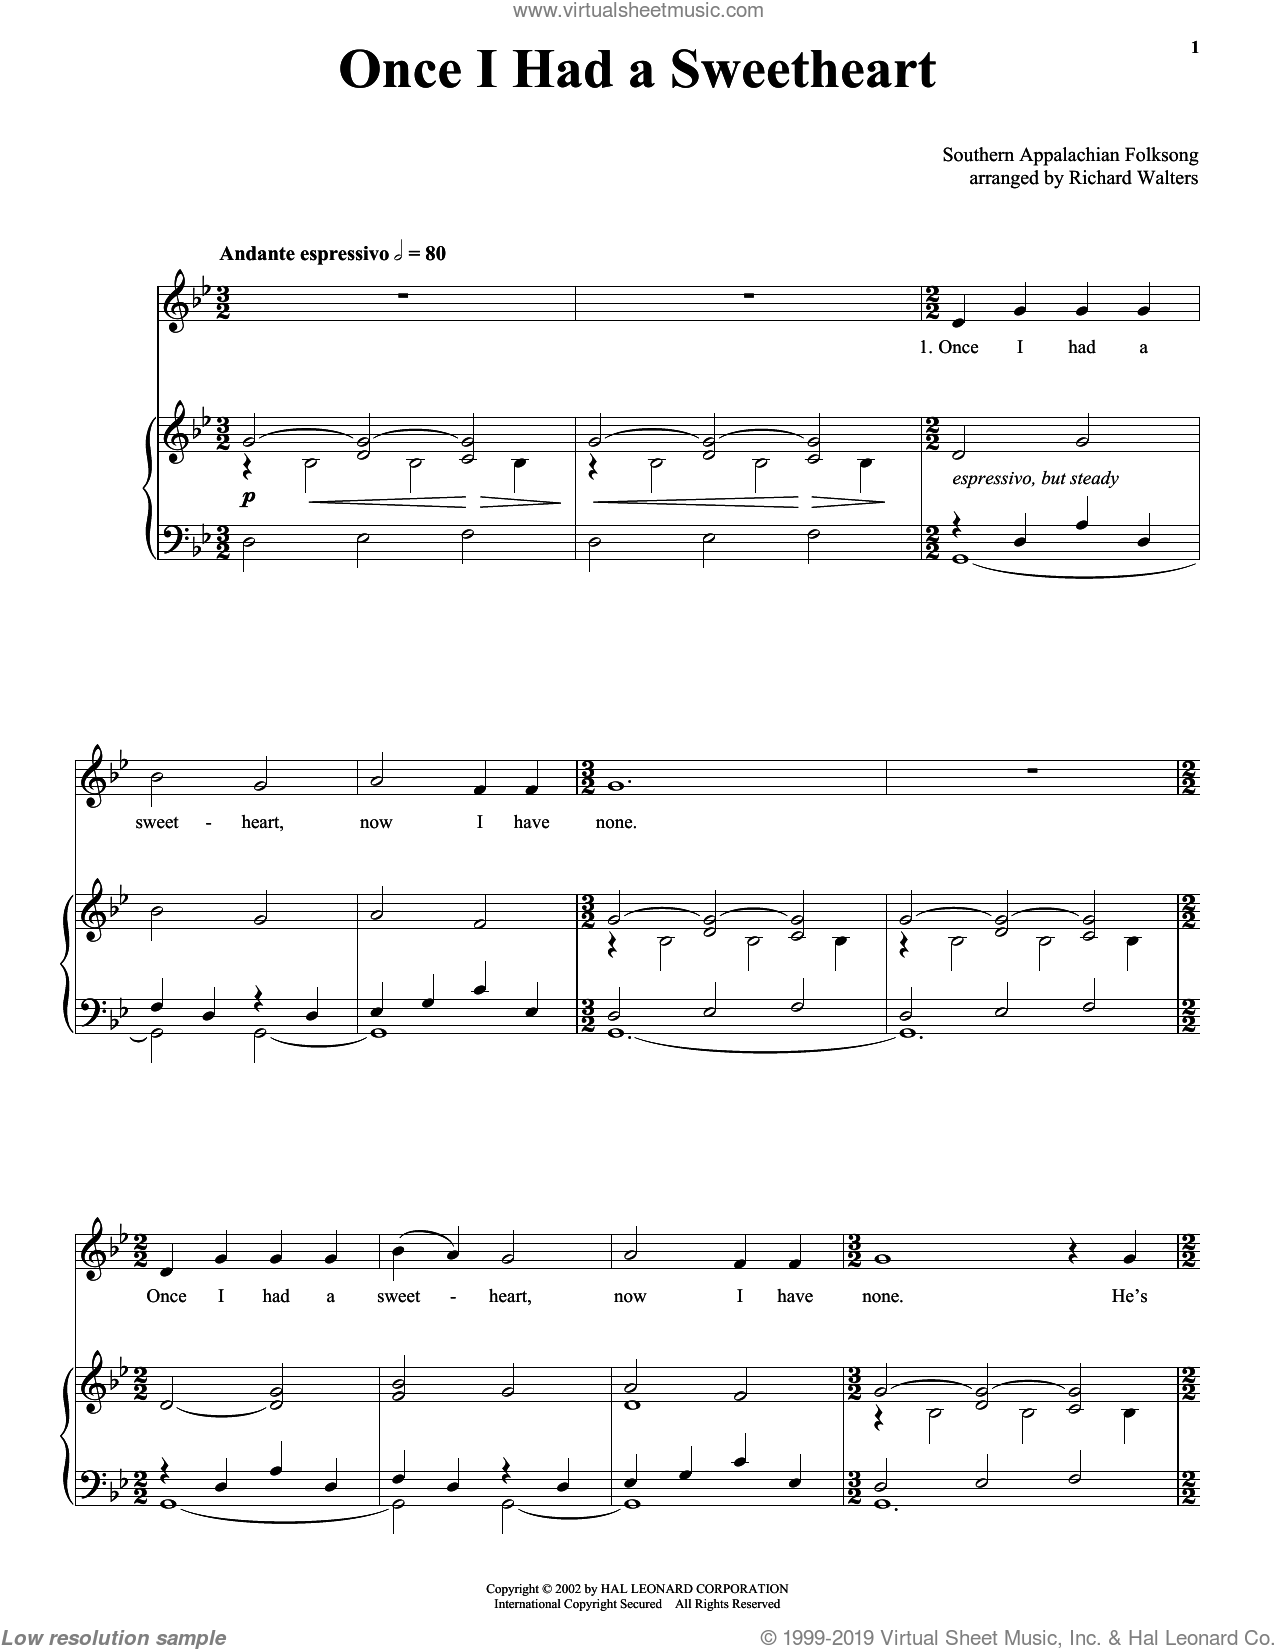 Once I Had A Sweetheart sheet music for voice, piano or guitar, intermediate skill level